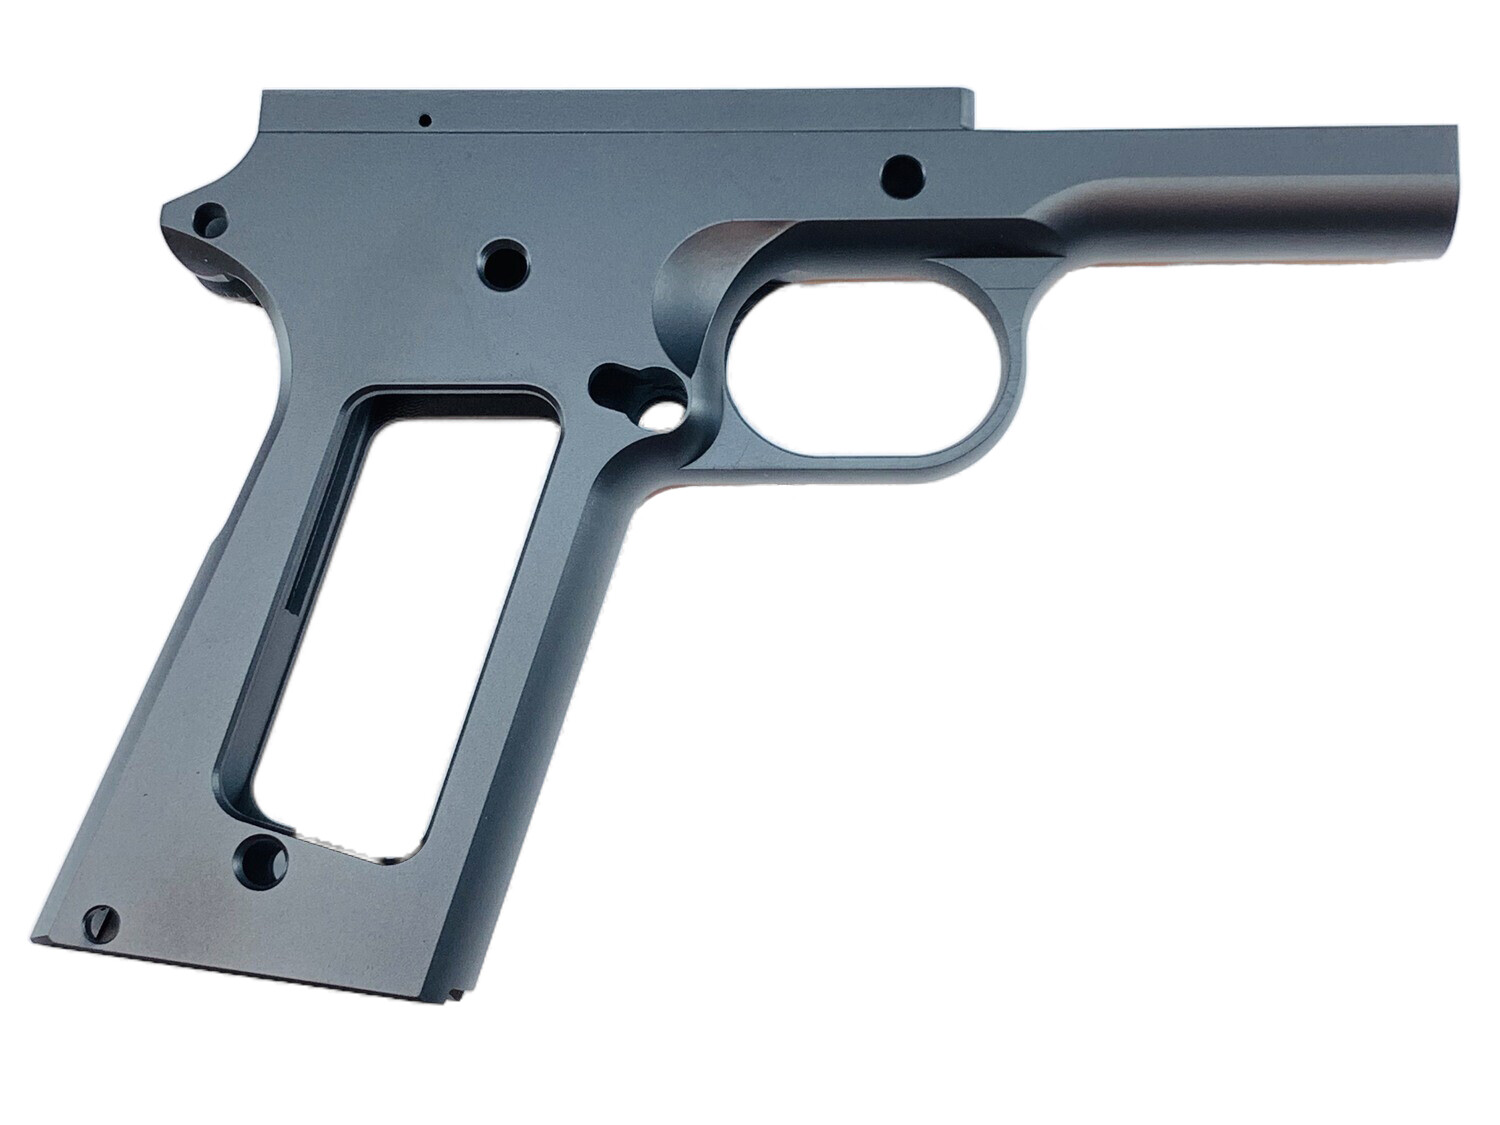 1911 80% 45 ACP Full Size Government Frame - Series 70 Forged 4140 Steel - Black